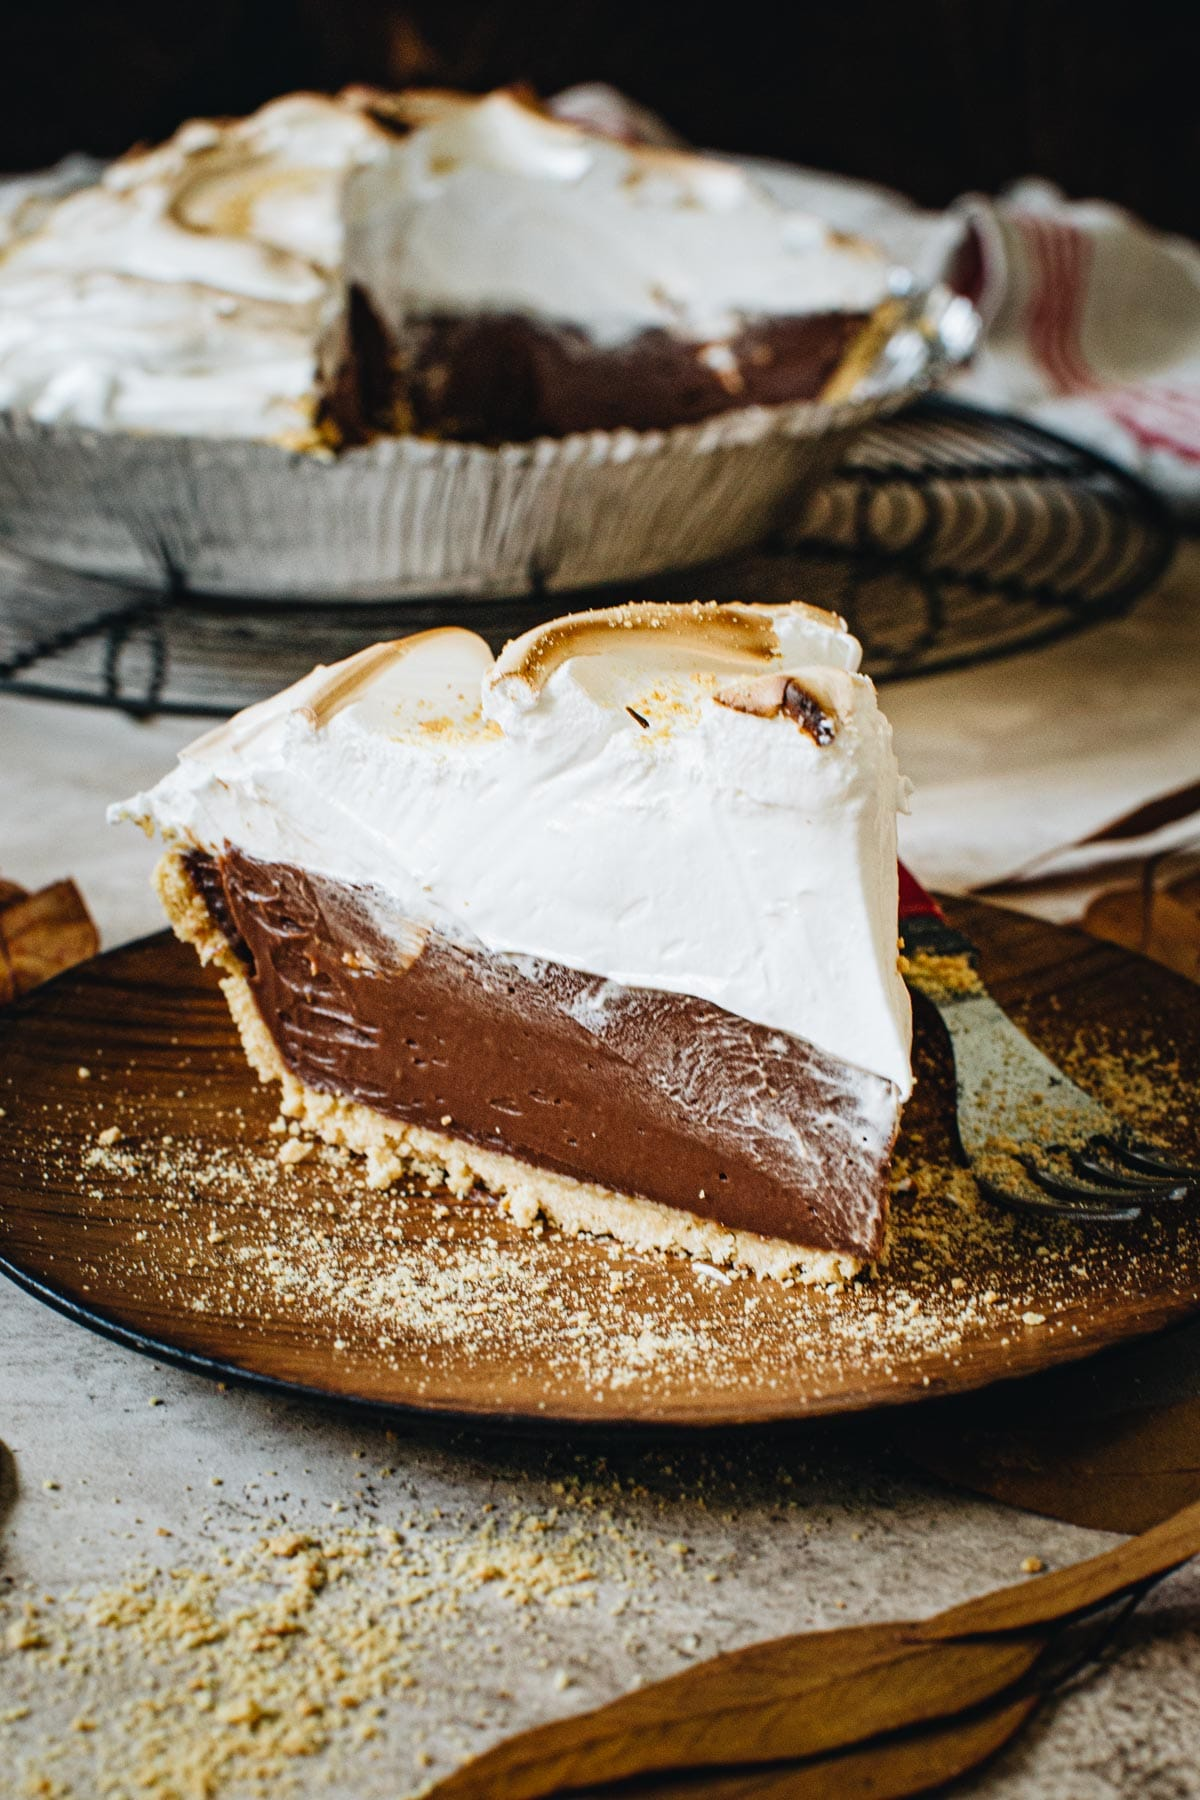 No-bake s'mores pie slice topped with marshmallow meringue on a wooden plate.